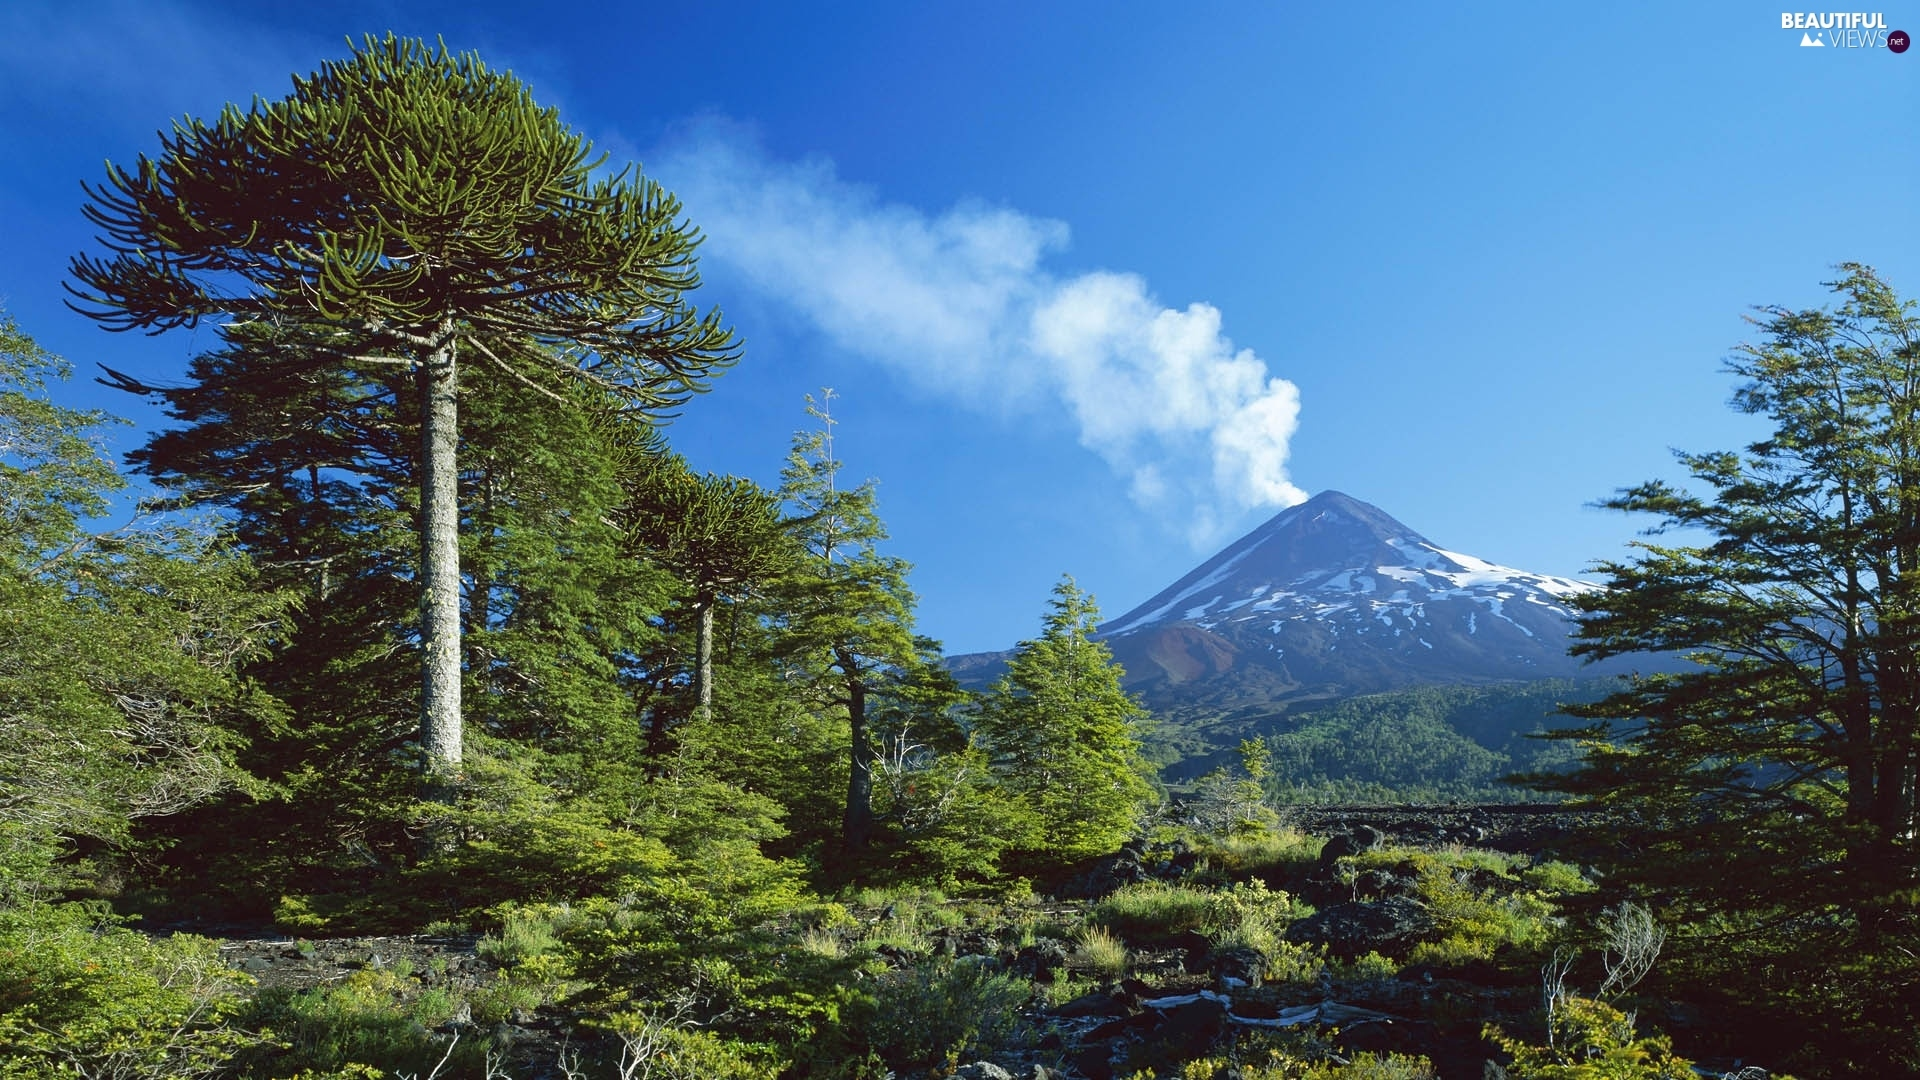 trees, mountains, volcano, viewes